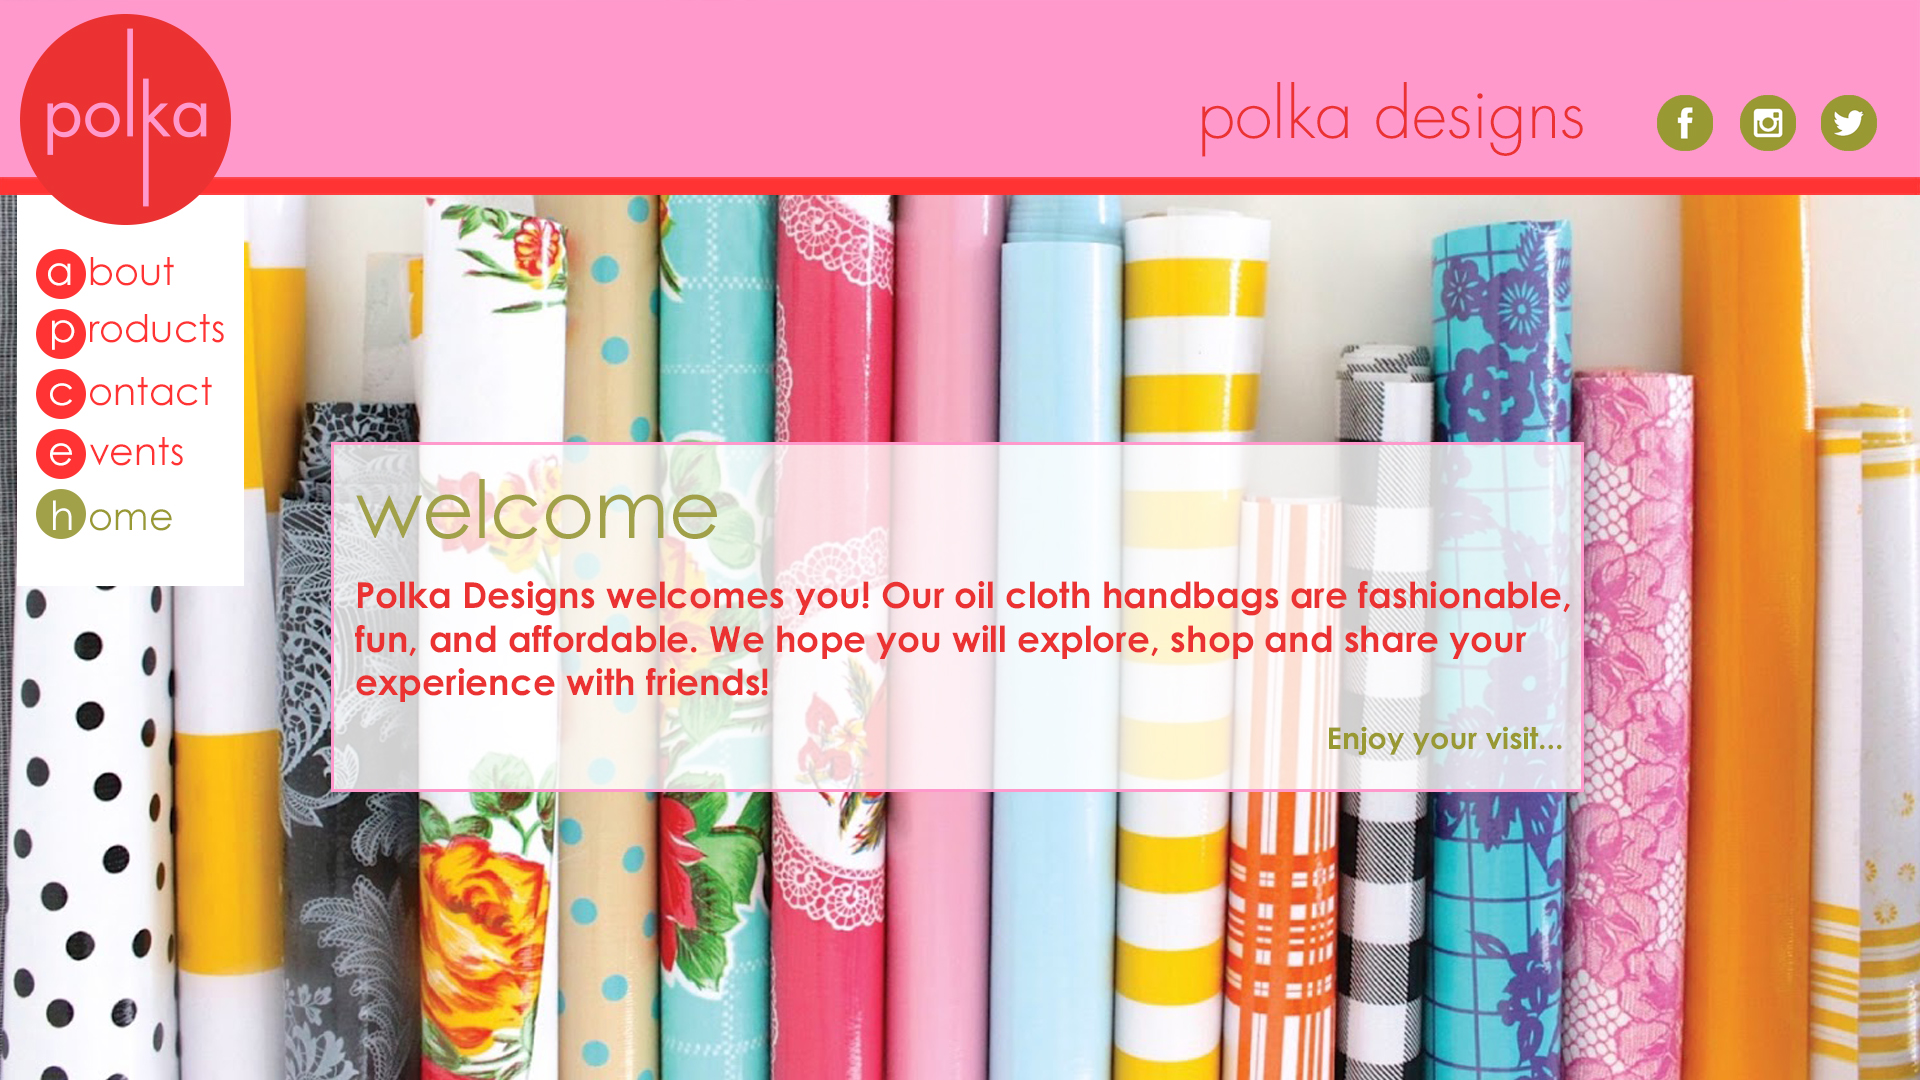 Website Concept  POLKA DESIGNS Oilcloth handbags and accessories